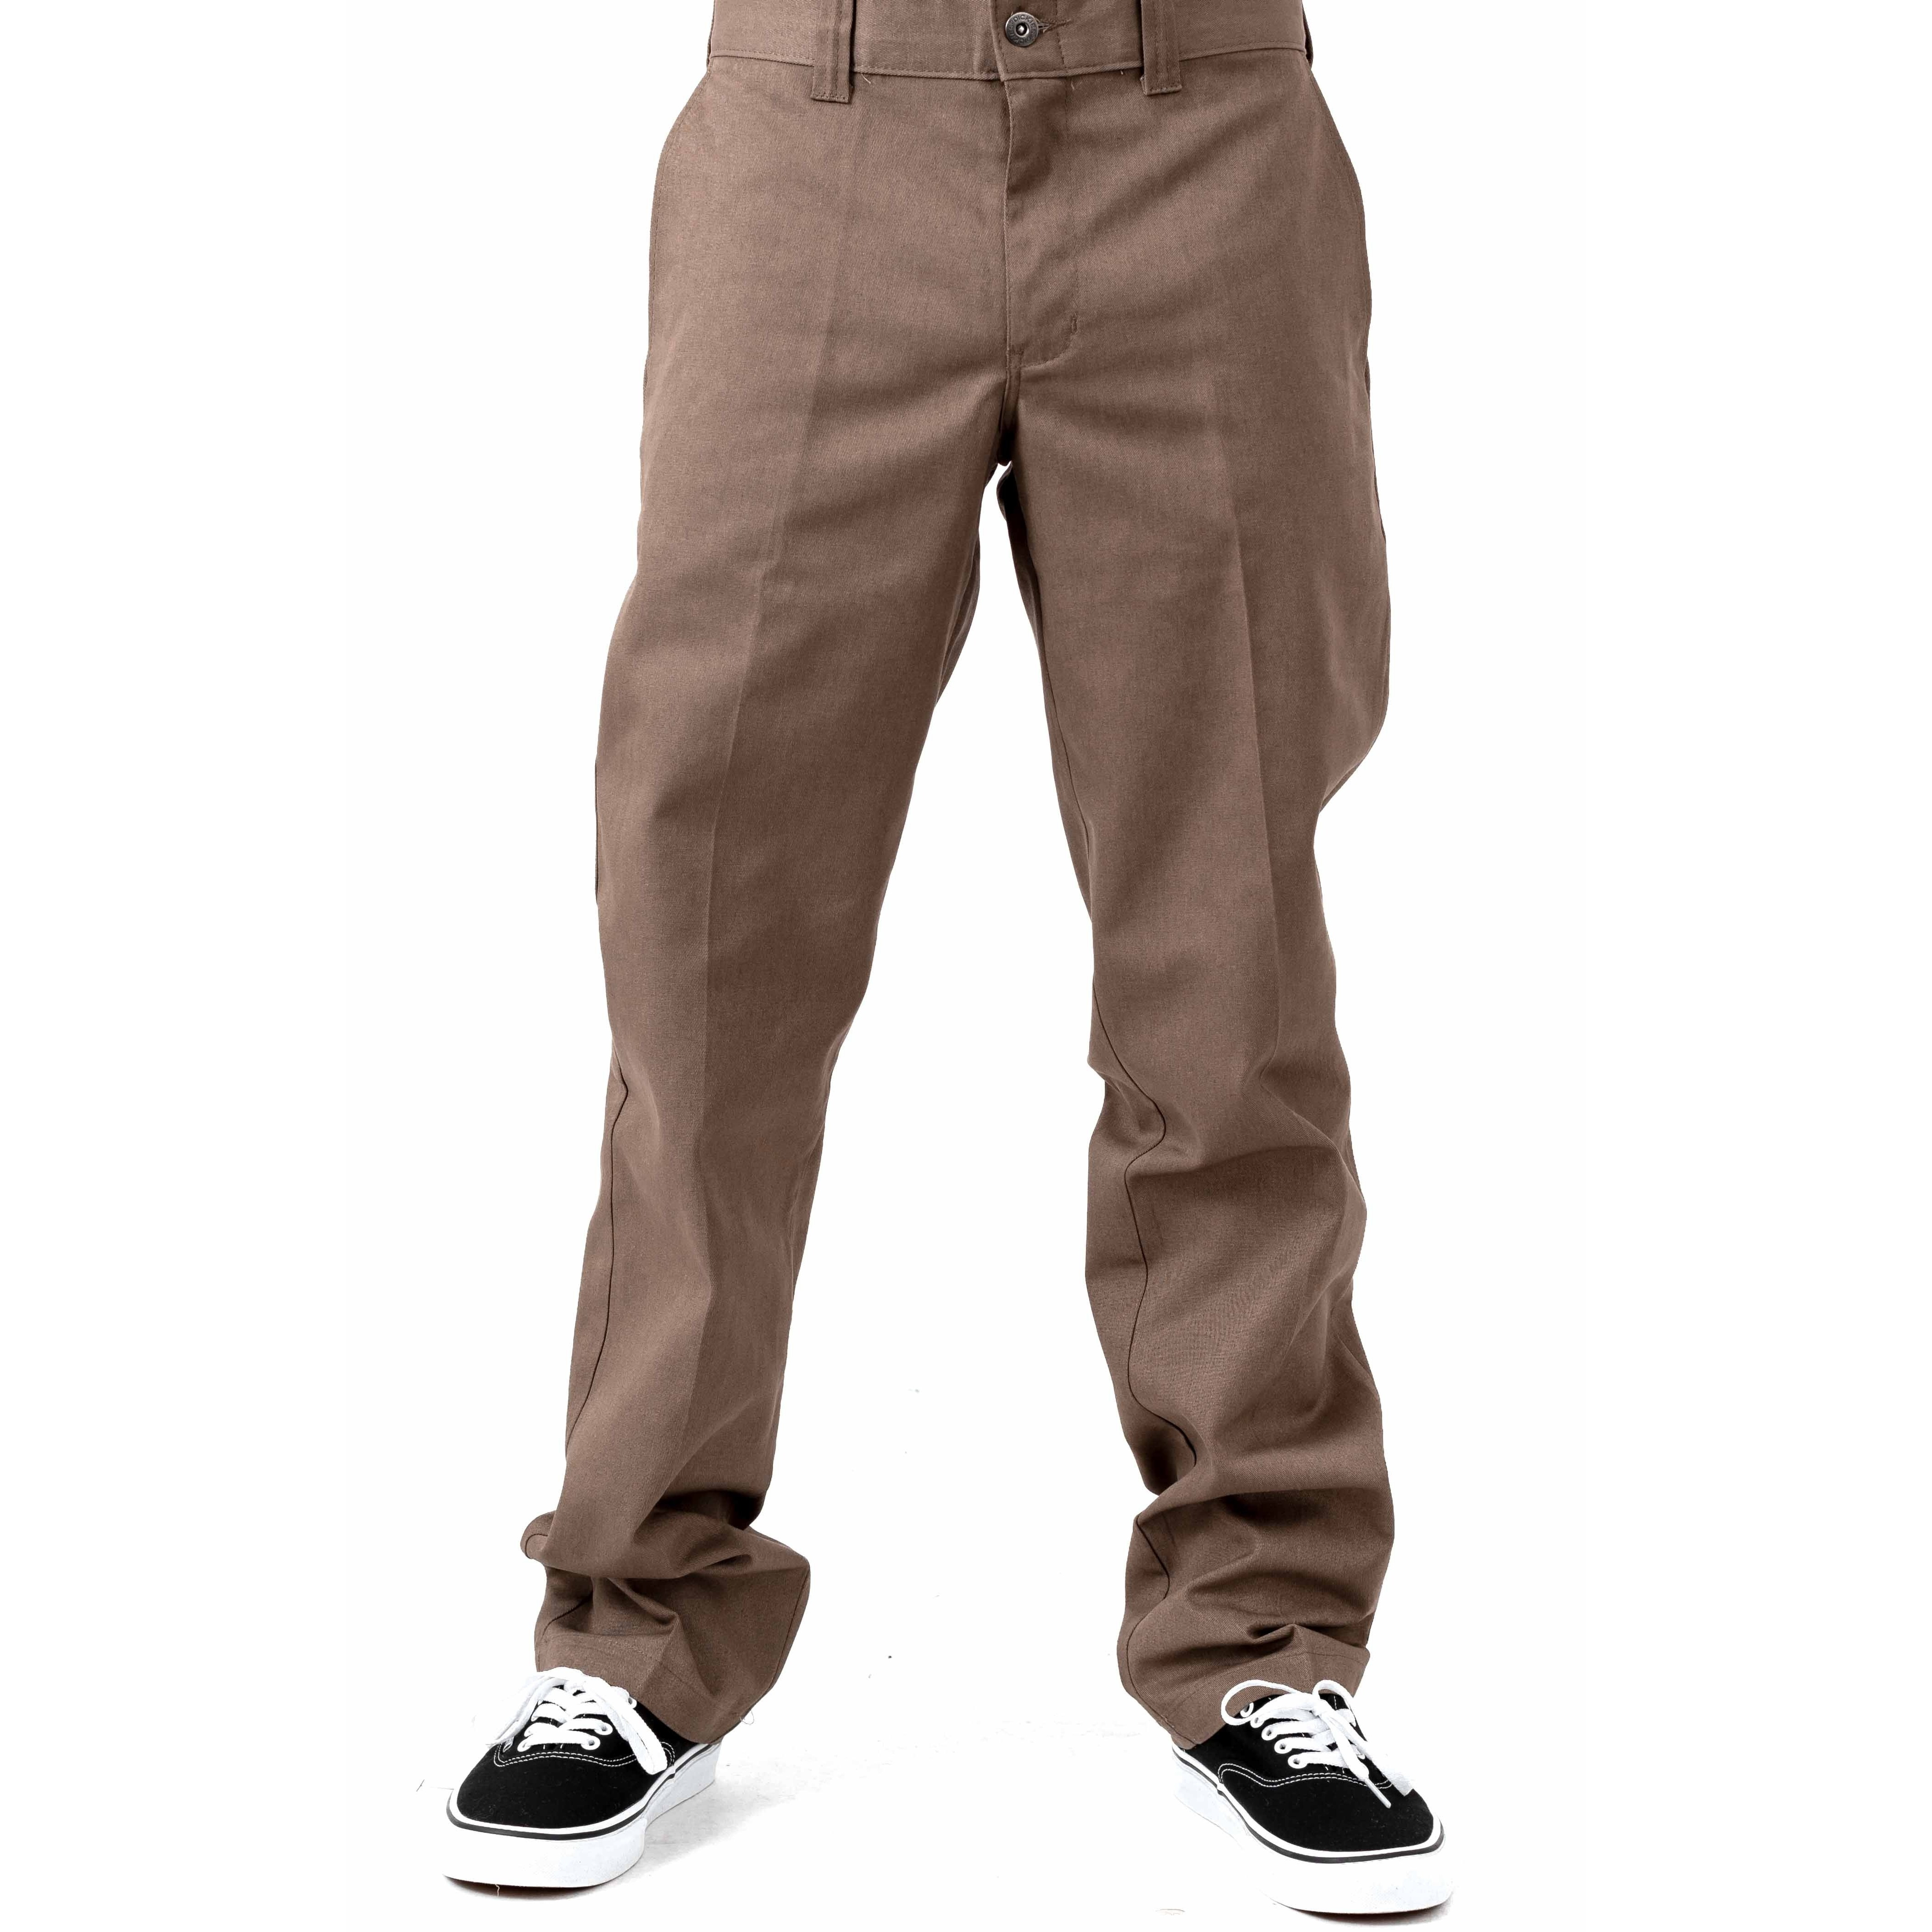 67 Slim Fit Industrial Work Pant (Mushroom)